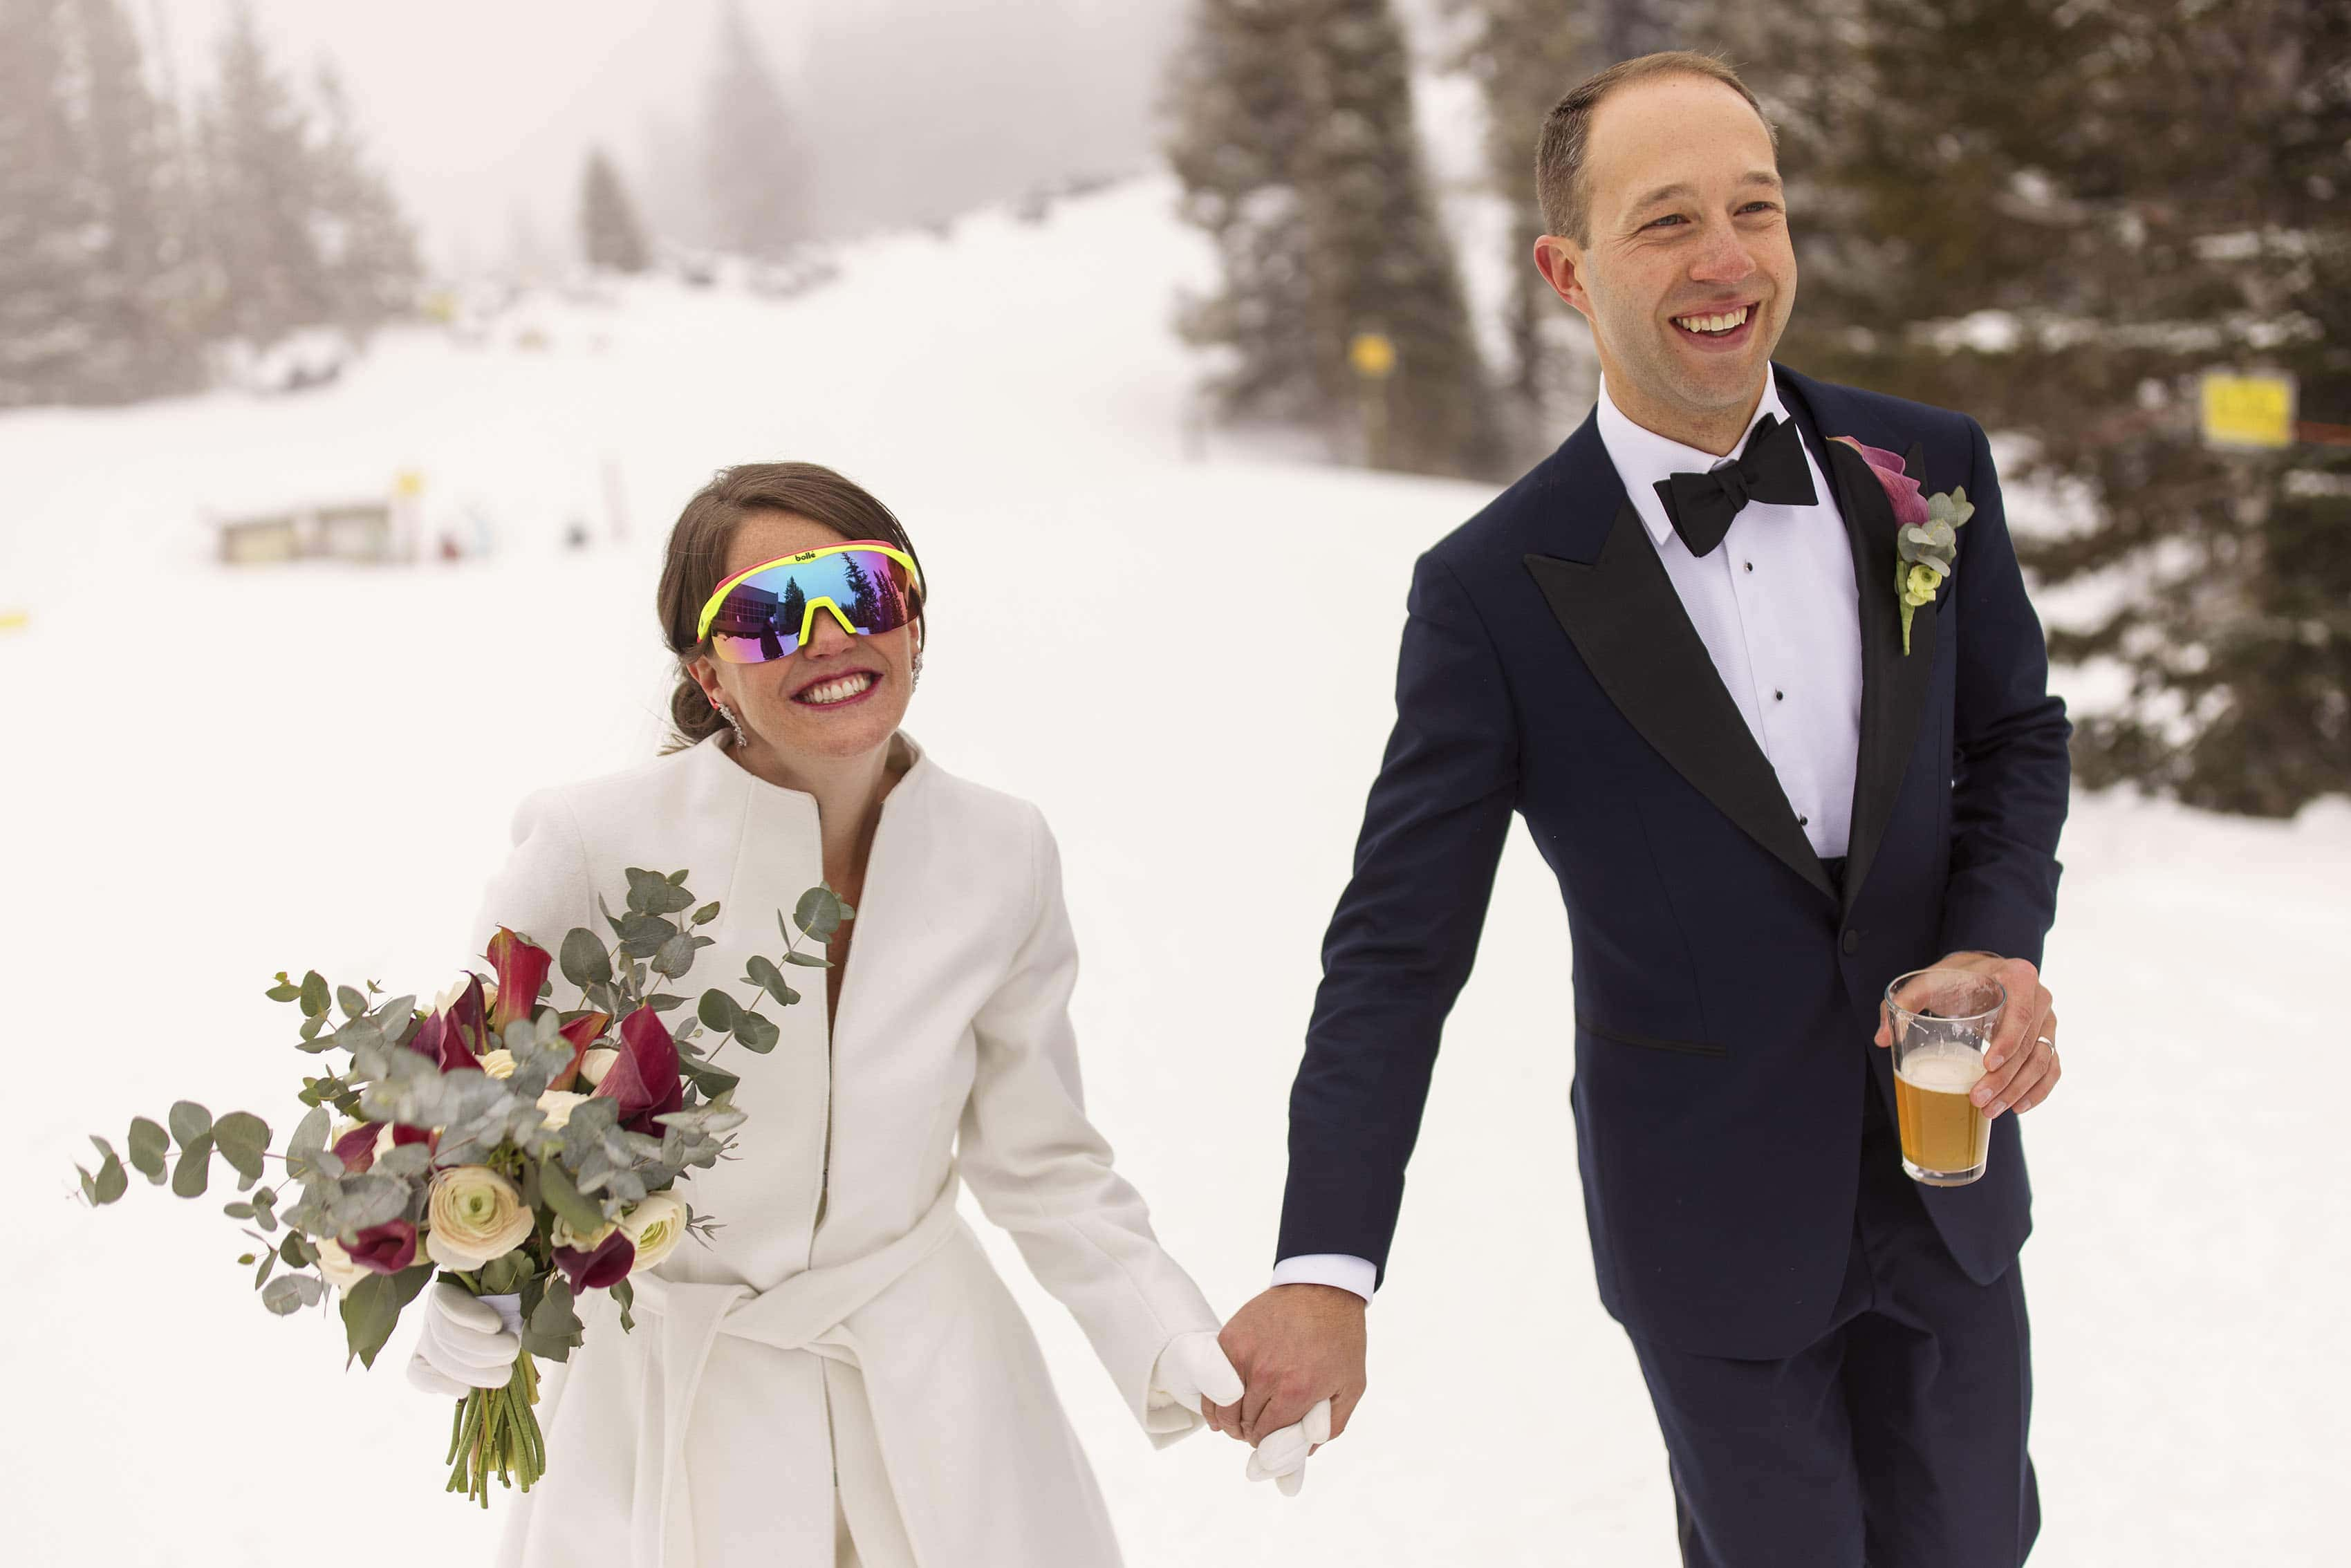 Olivia sports retro sunglasses as Kyle enjoys a beer after their wedding ceremony in Aspen